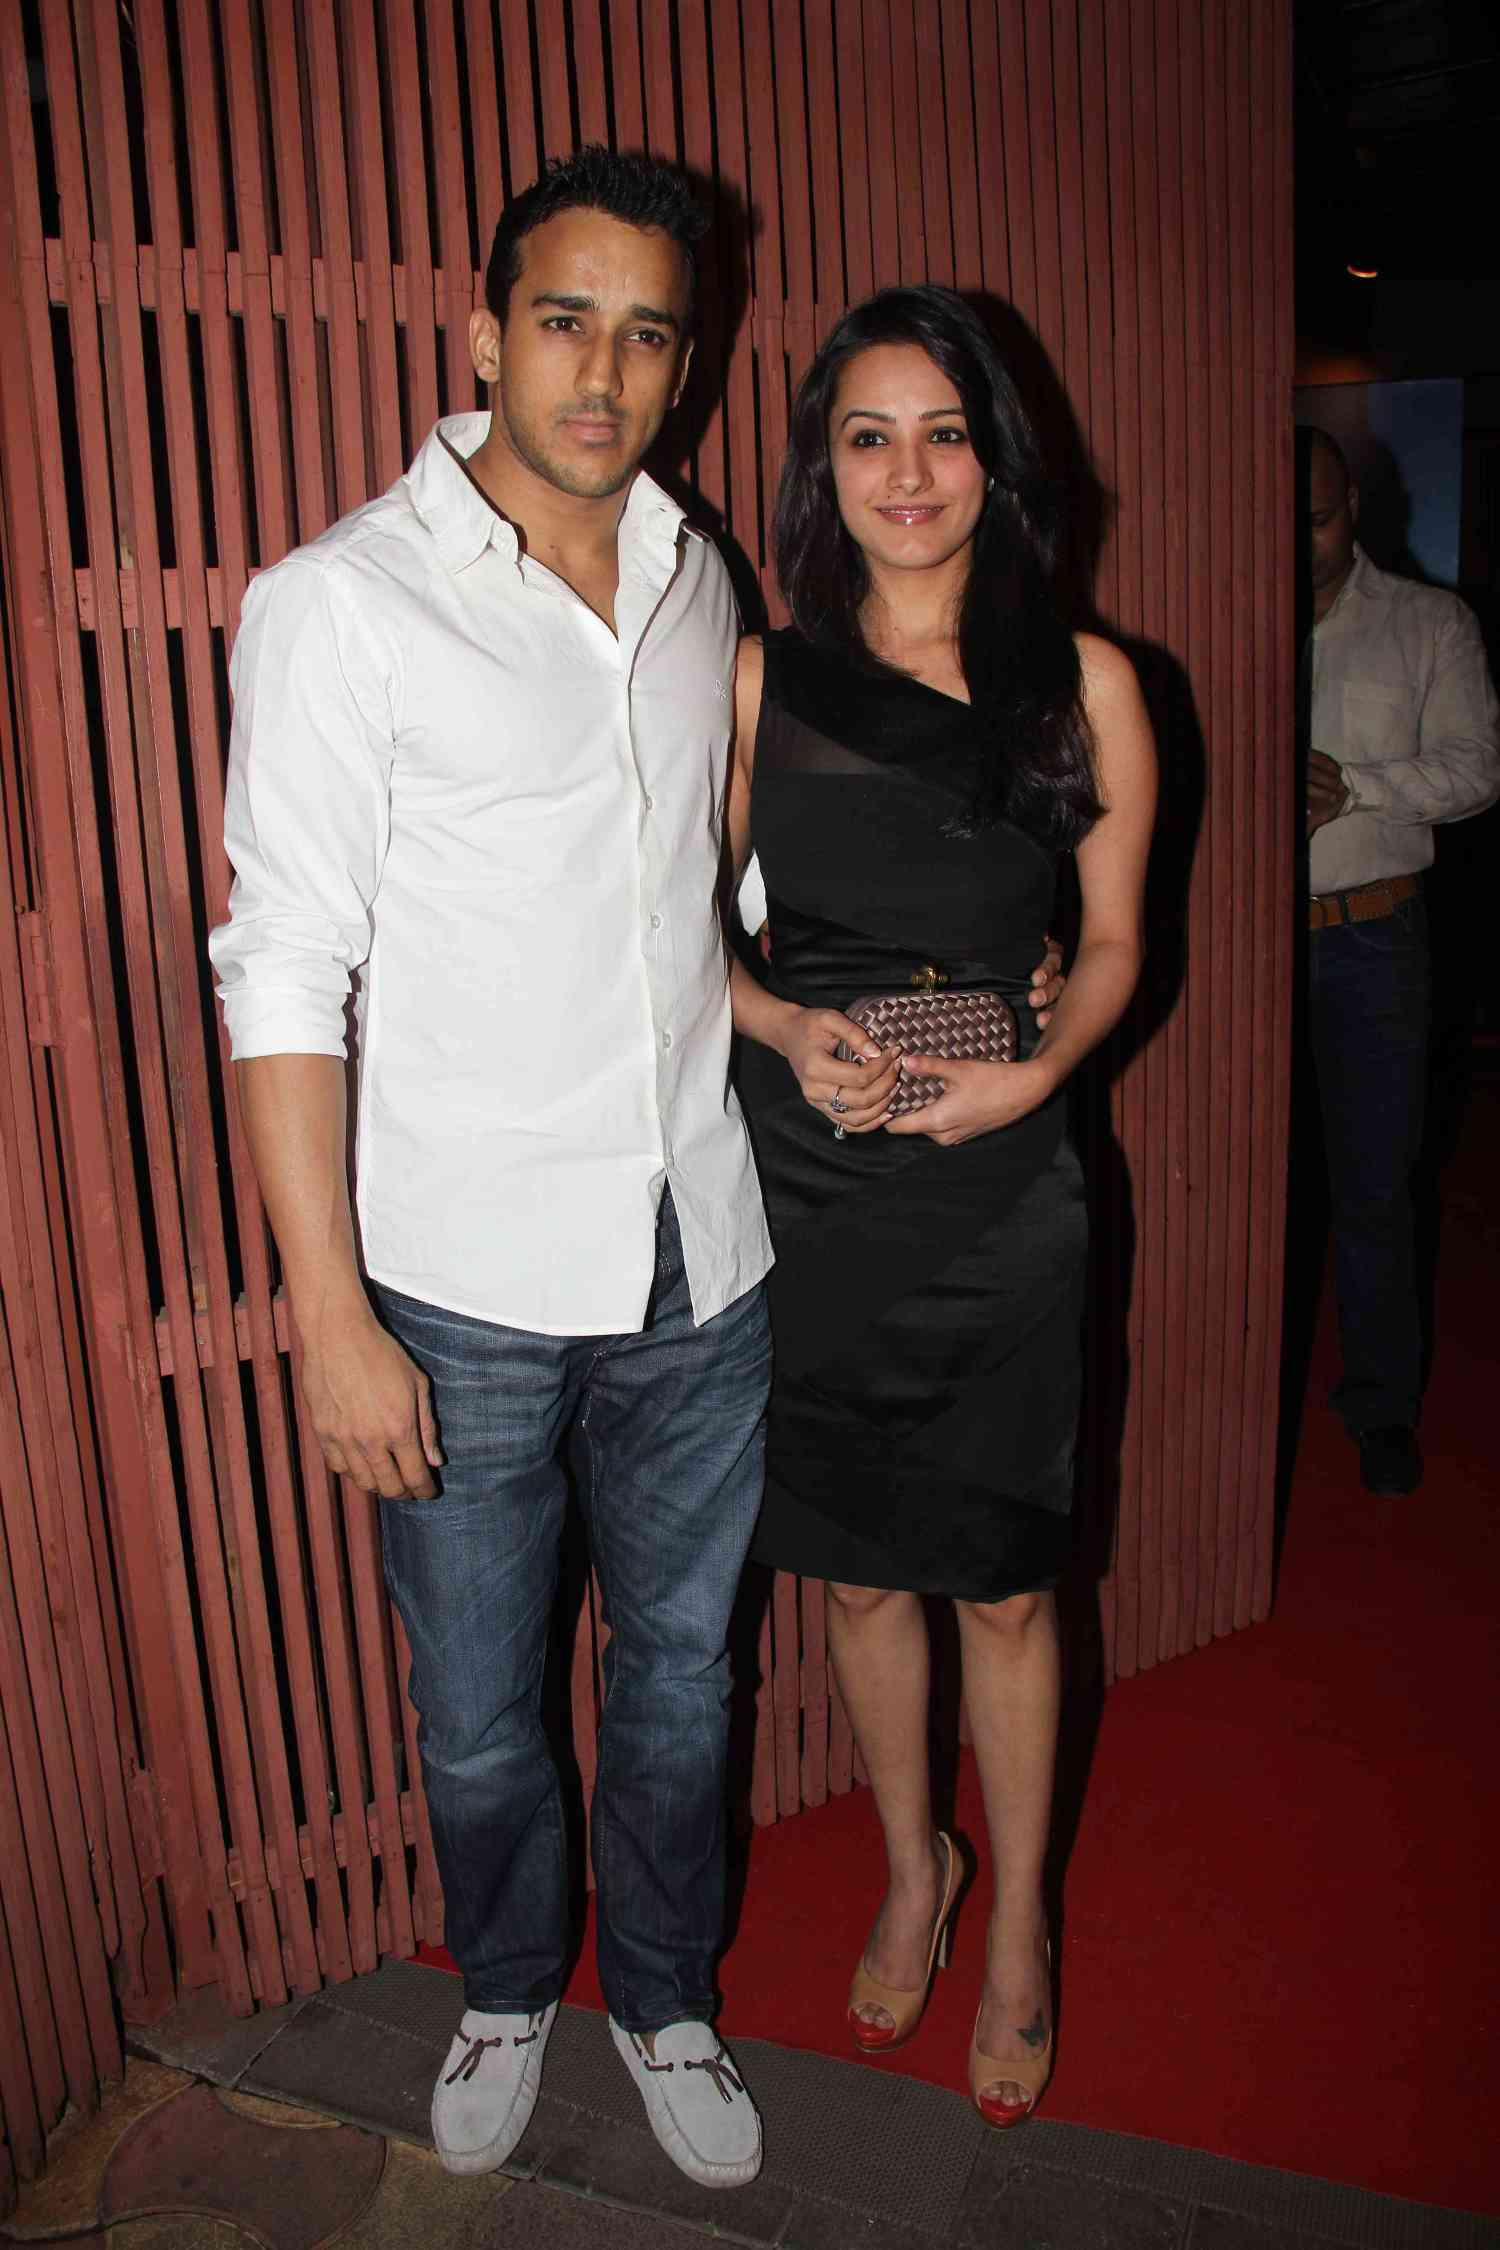 anita hasnandani with new boyfriend at film the dirty picture